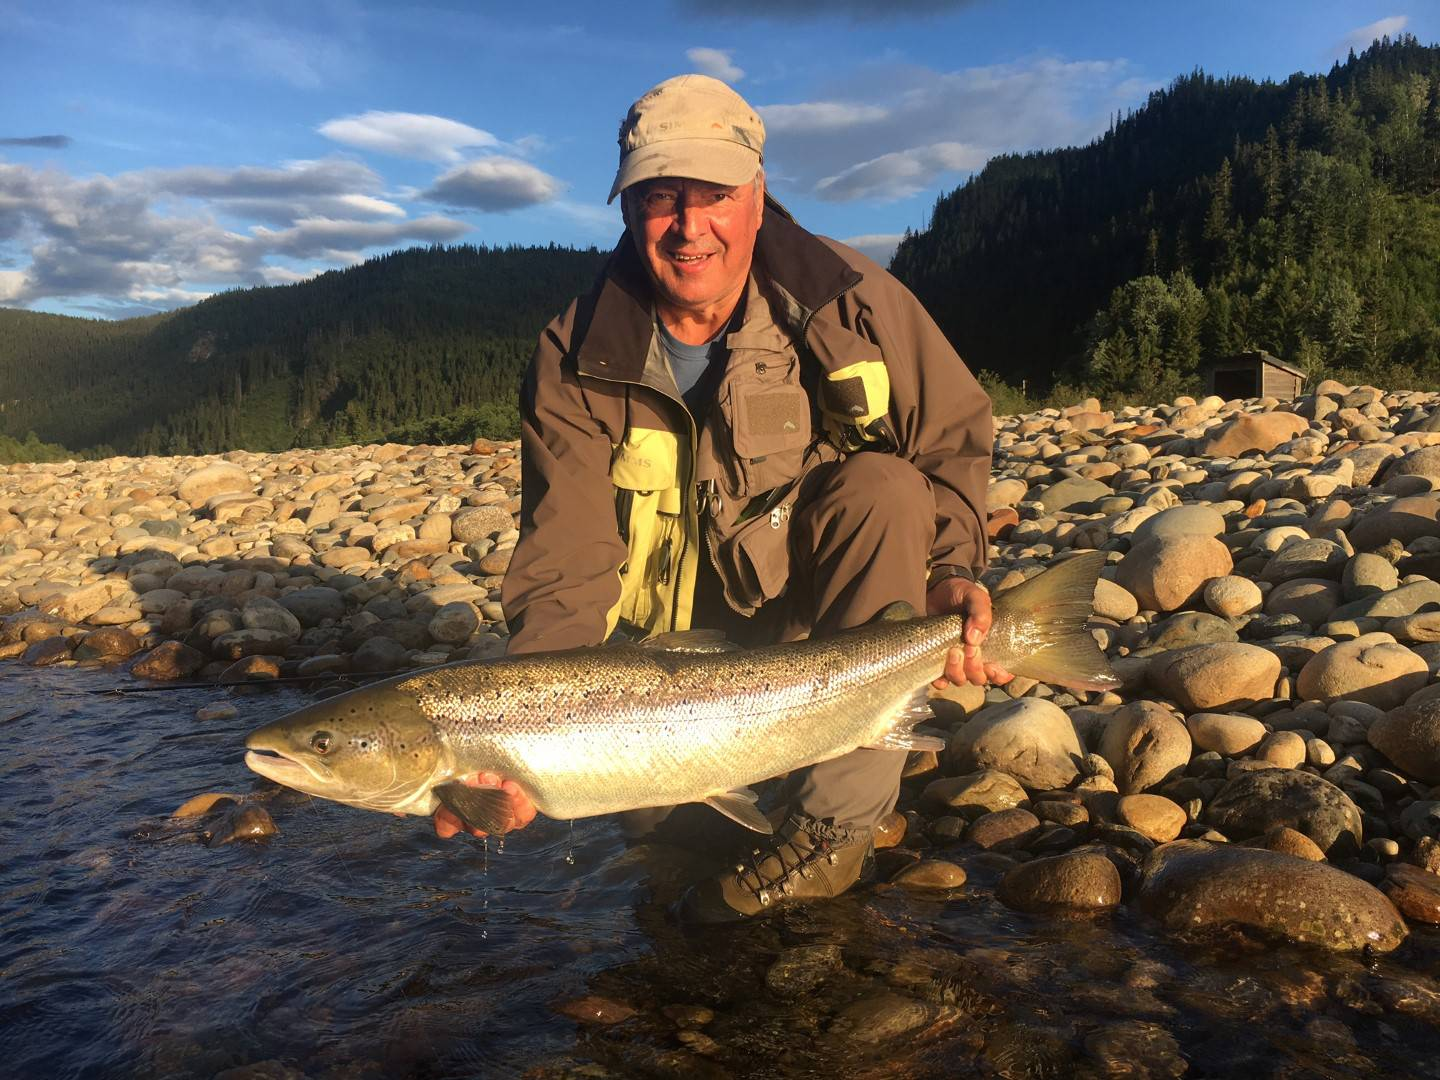 Jean-Marie with his nice salmon from Beat C2